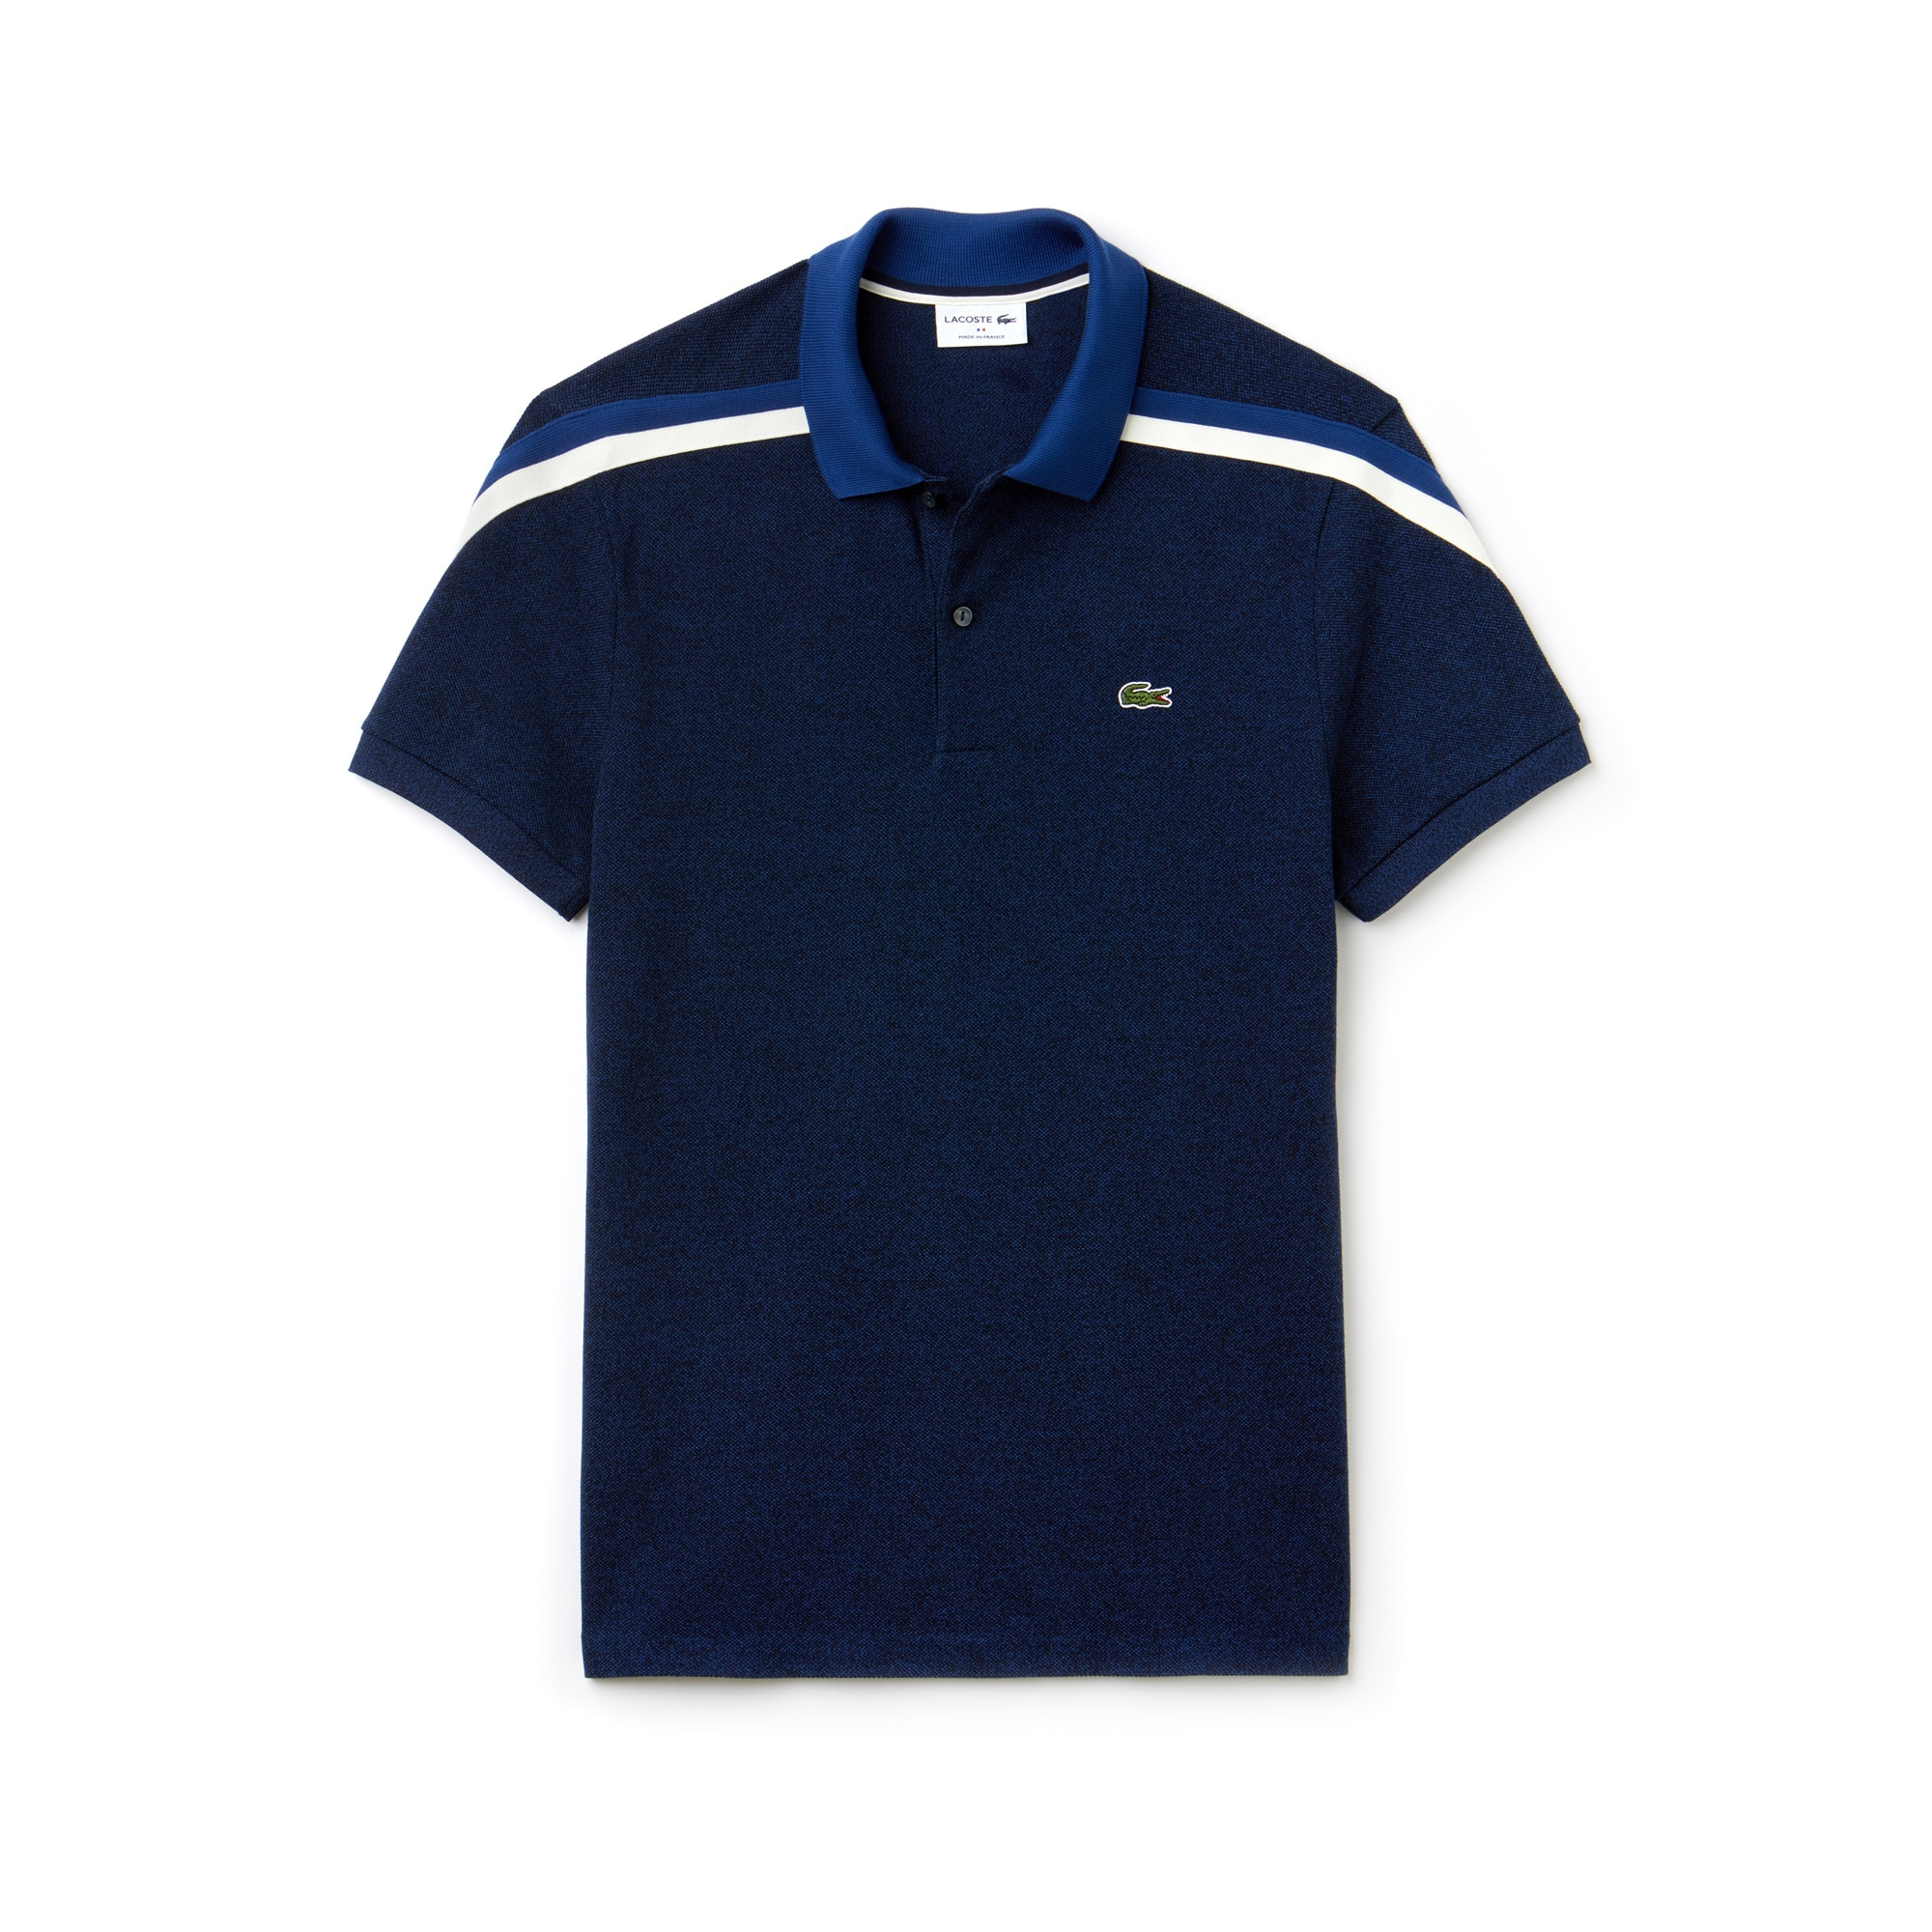 Lacoste - Polo De Hombre Lacoste Made In France Regular Fit En Piqué De Algodón - 4